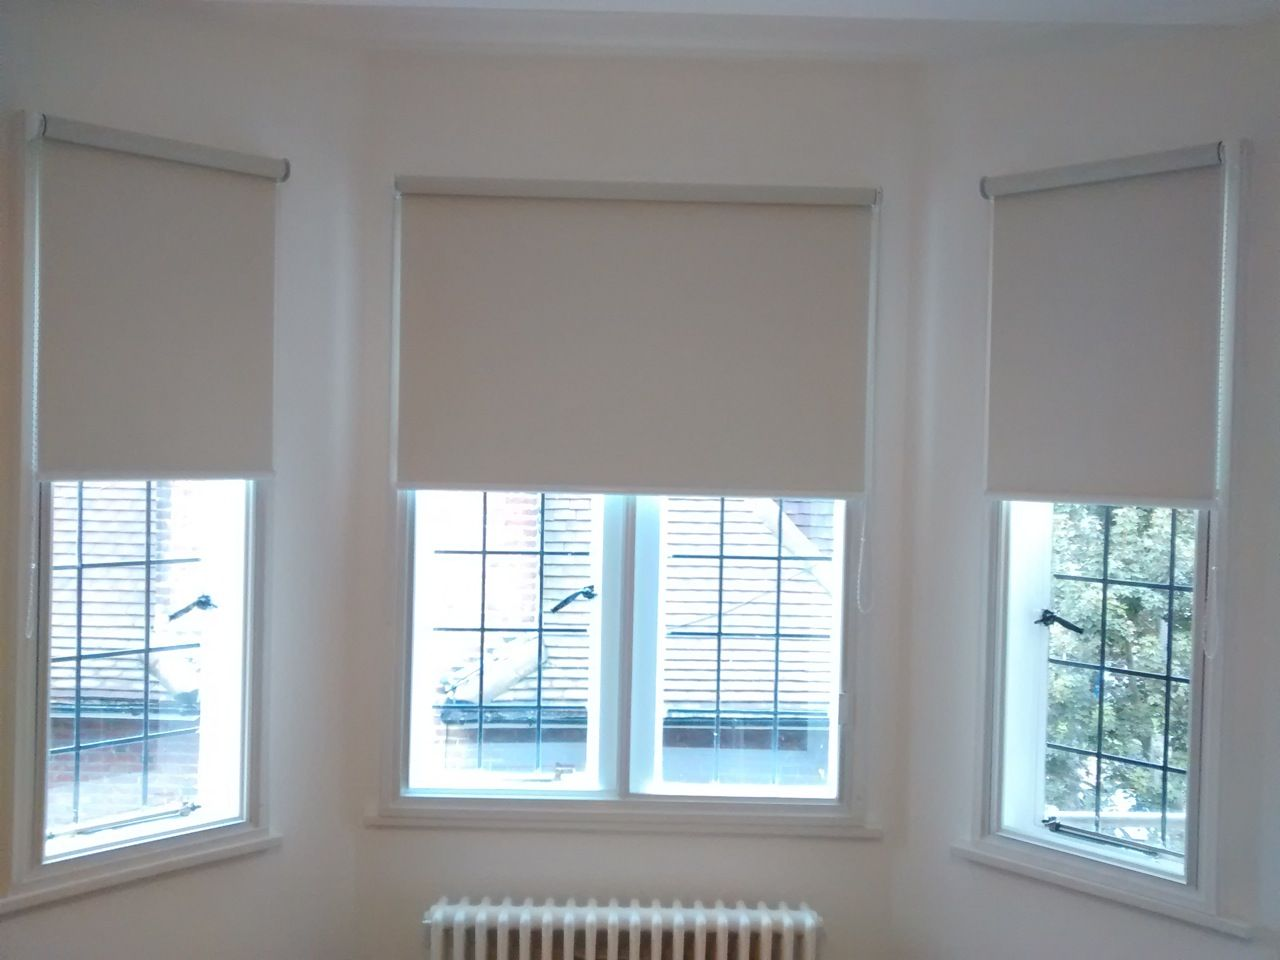 Diy Vertical Blinds Blackout Roller Blinds Fitted To A Bay Window First Home